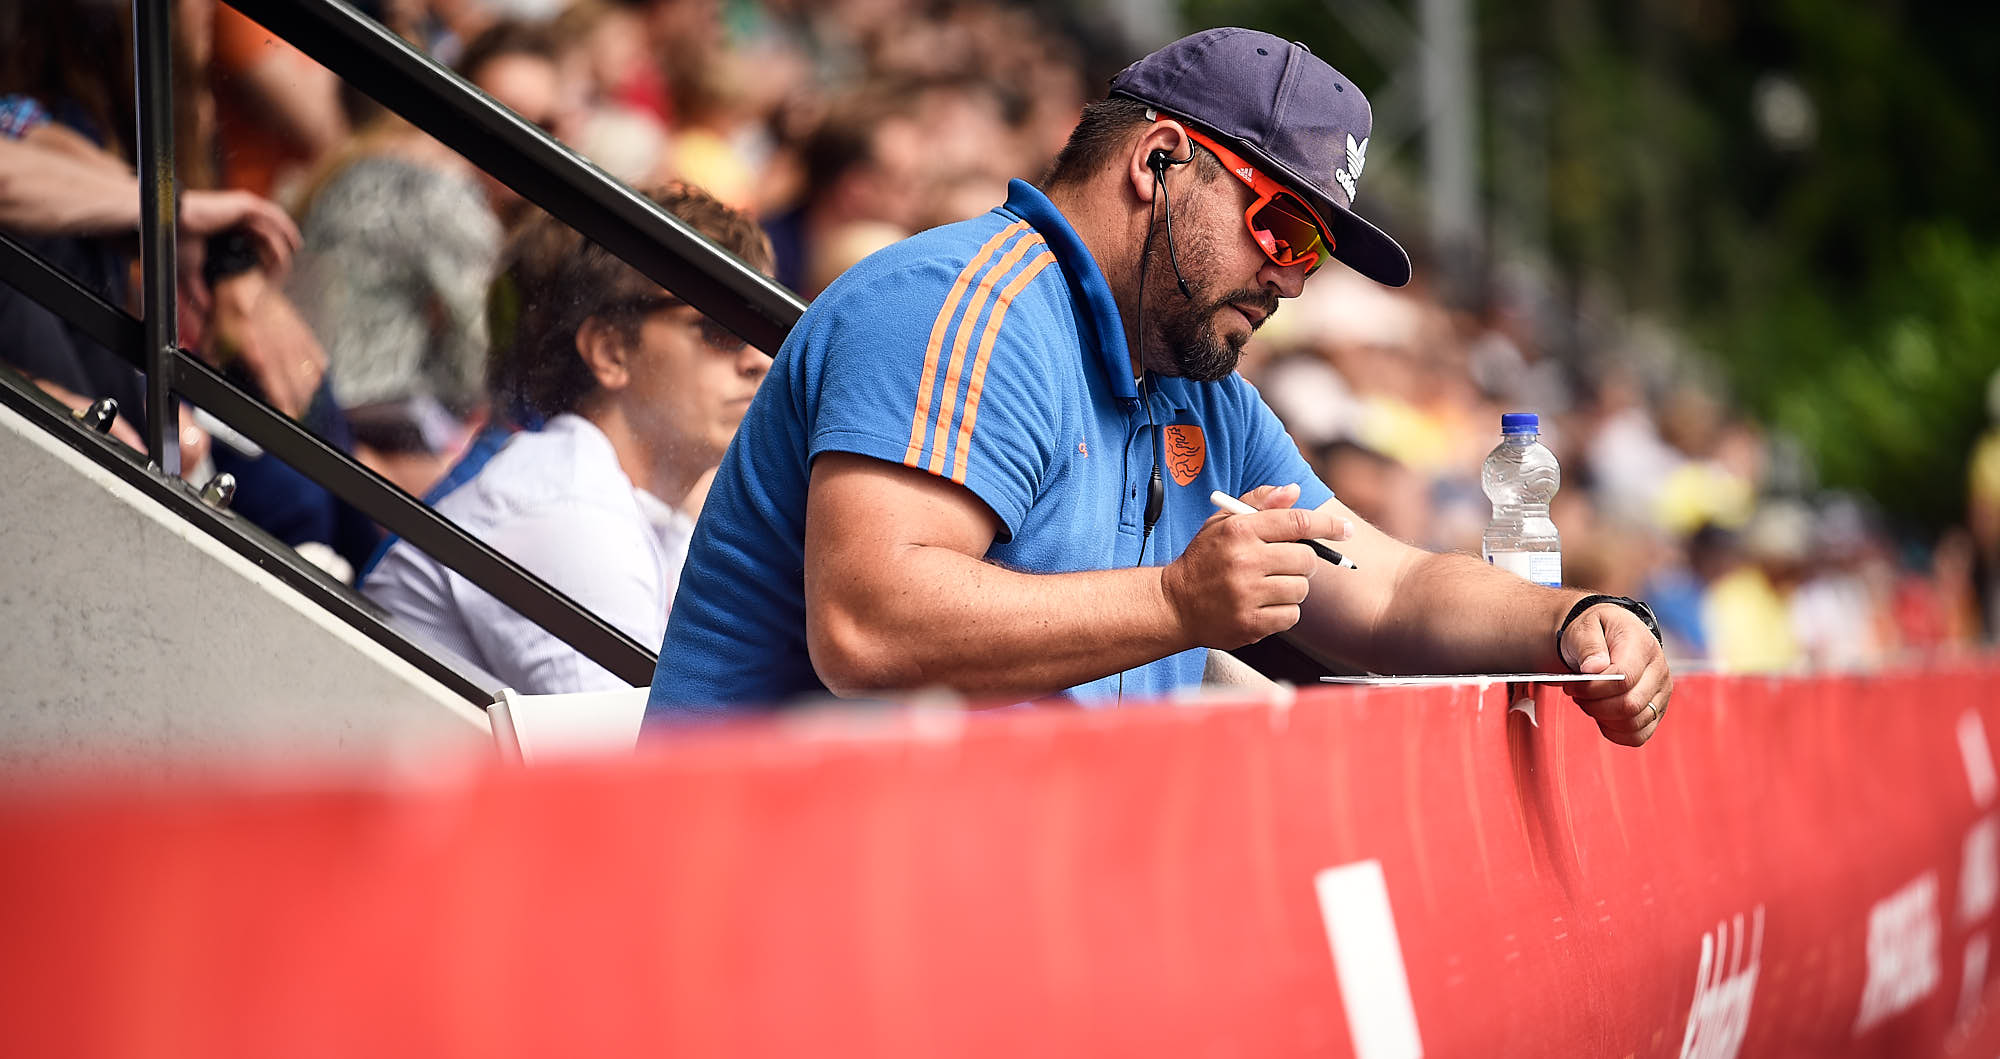 Dutch national hockey team coach during the 2019 FIH Pro League Finals in Amsterdam